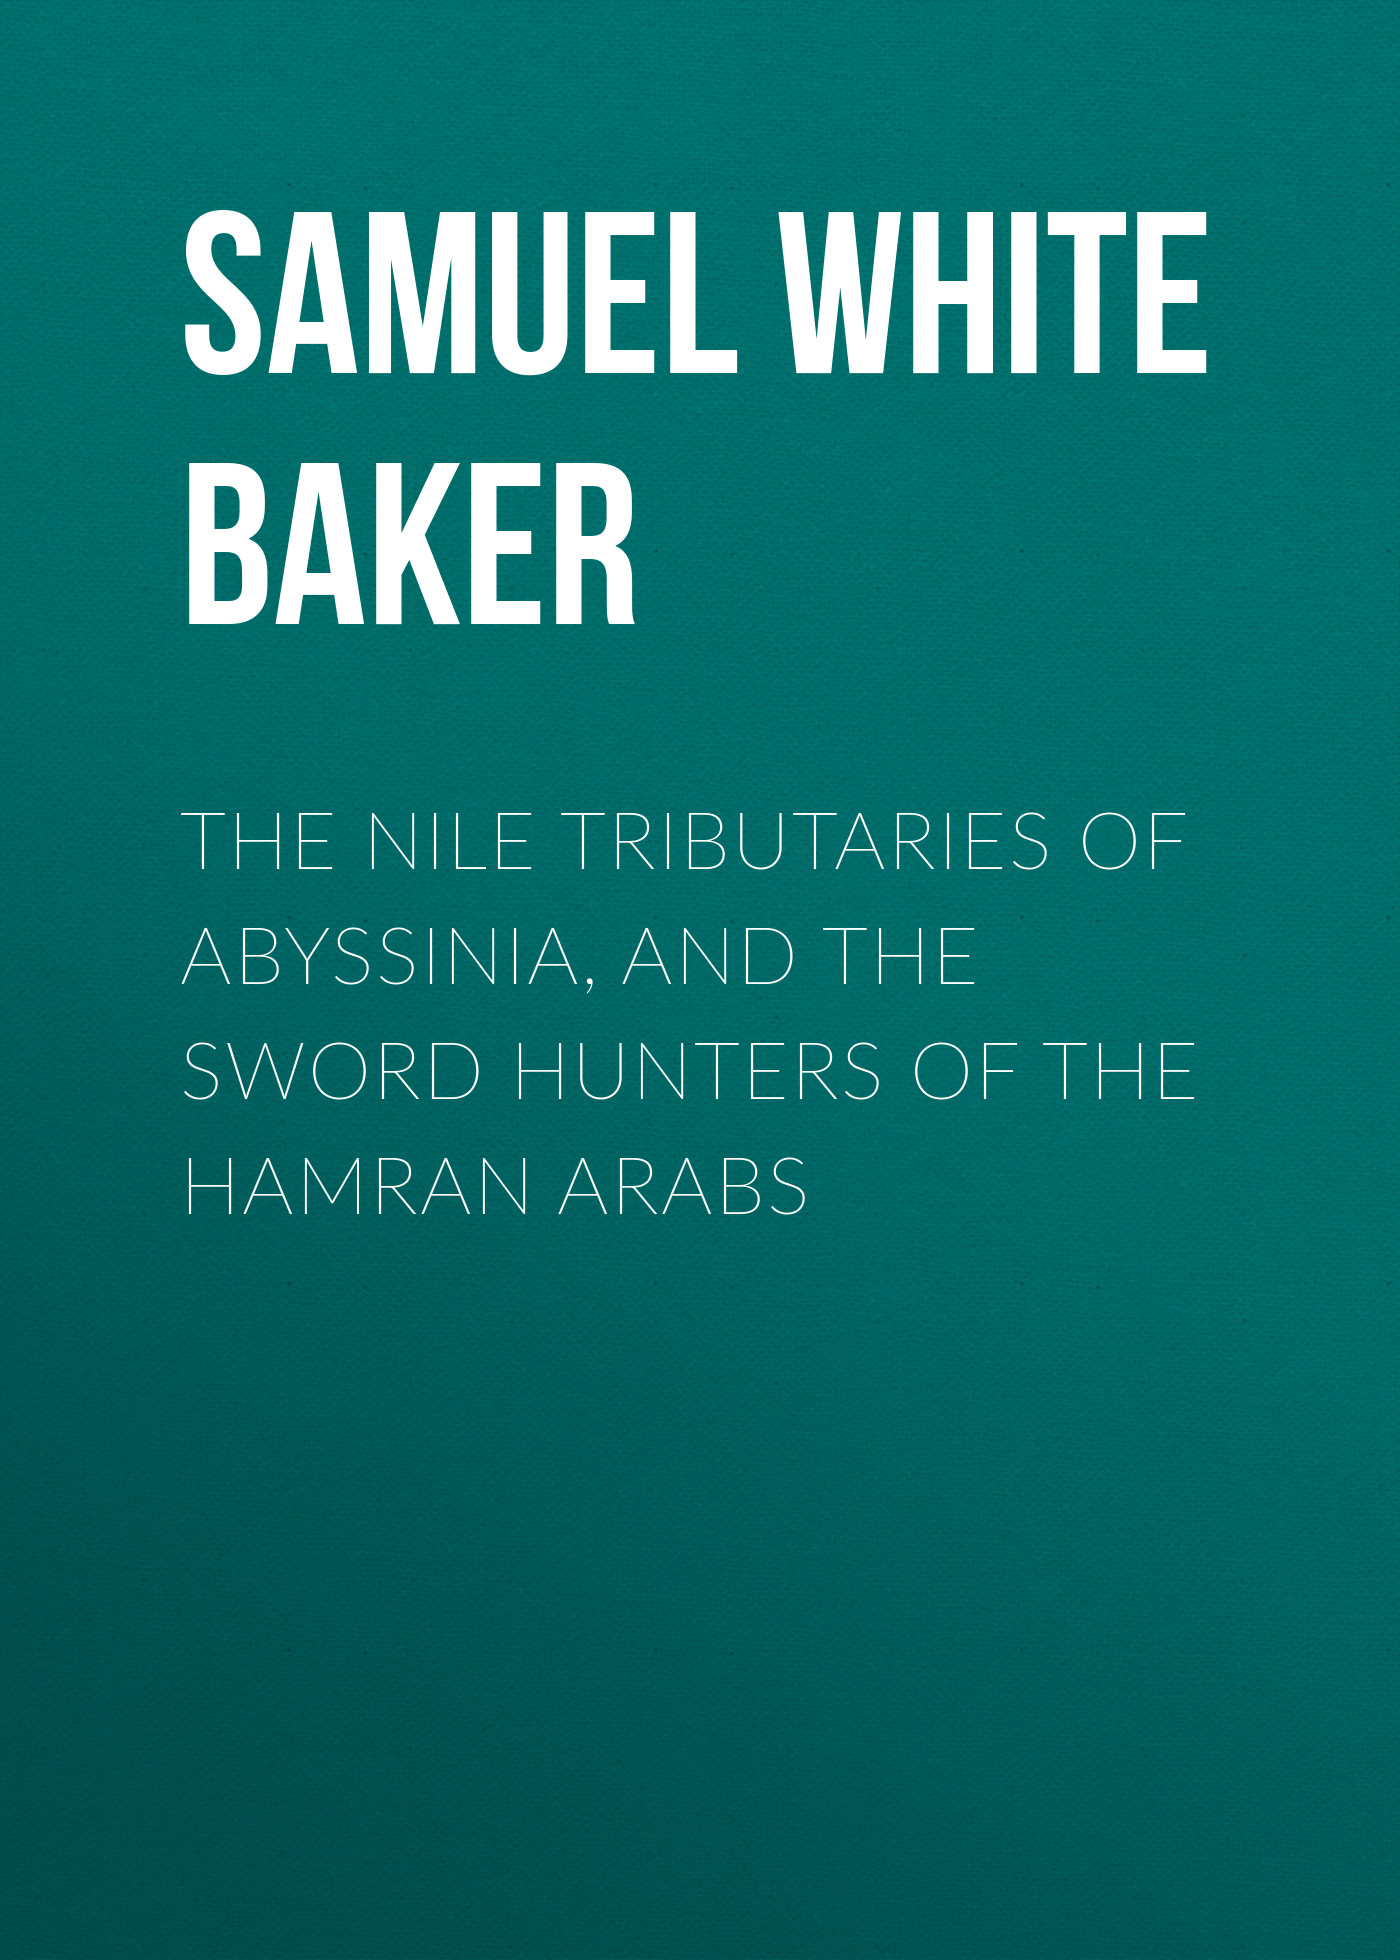 Samuel White Baker The Nile Tributaries of Abyssinia, and the Sword Hunters of the Hamran Arabs цена